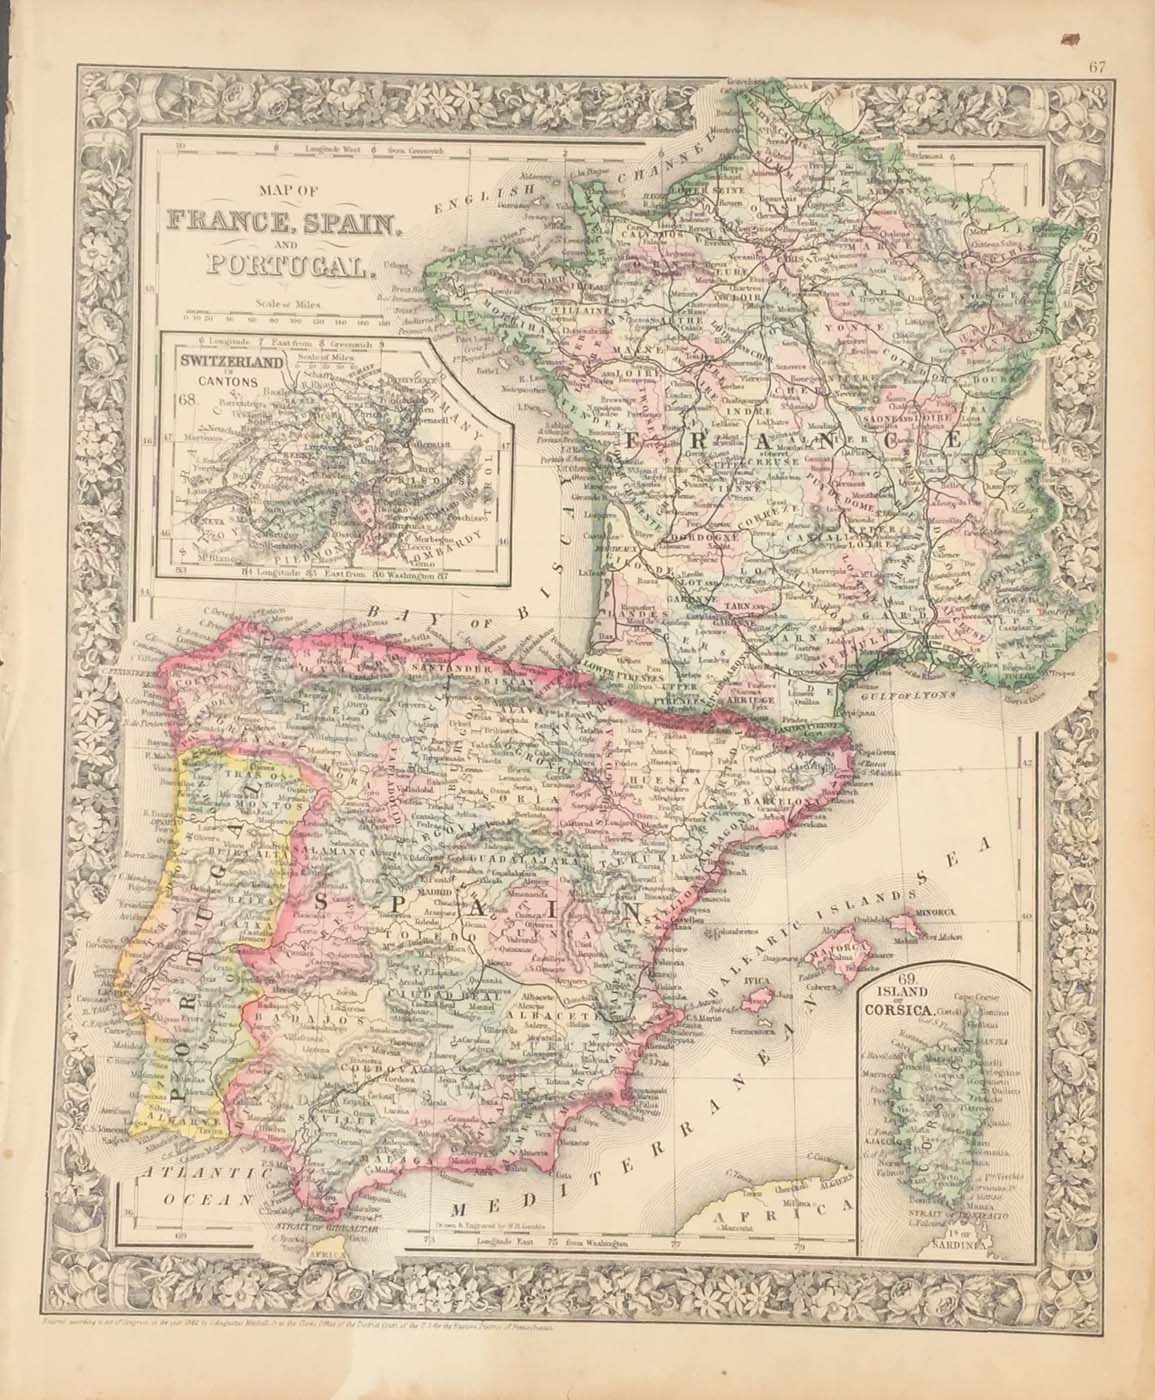 Map Of Spain Portugal And France.France Spain Portugal